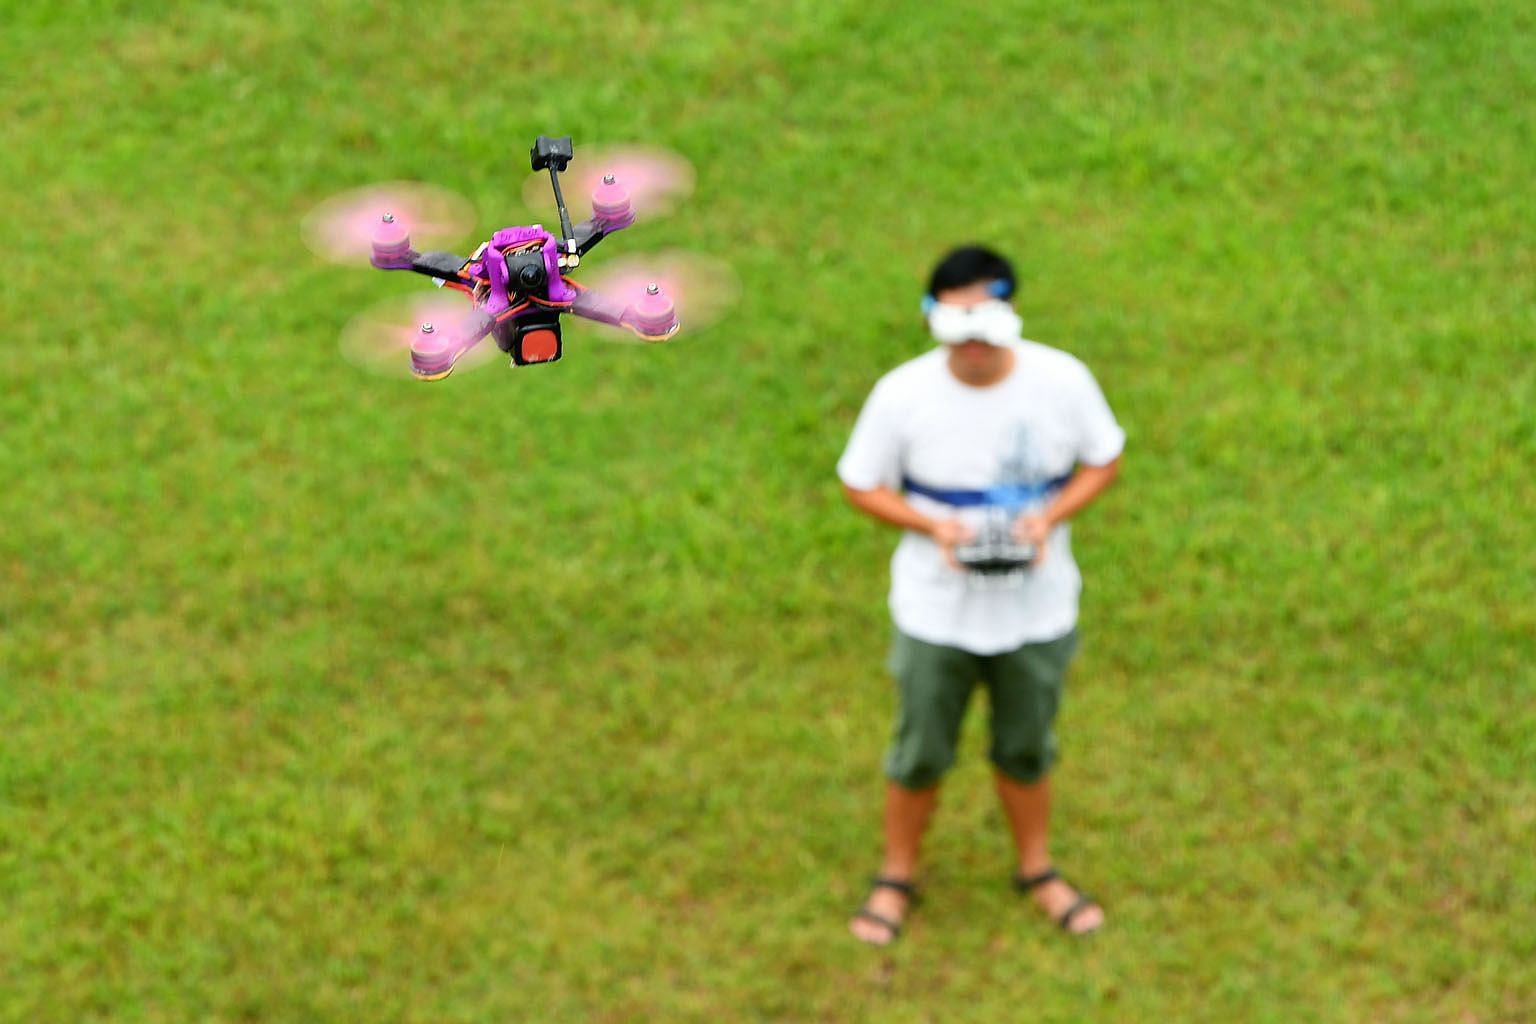 With more drones getting off the ground in Singapore, and Changi Airport expected to handle a growing number of flights in the coming years, it is crucial that the authorities beef up its capabilities to detect and disable malicious drones, and revie